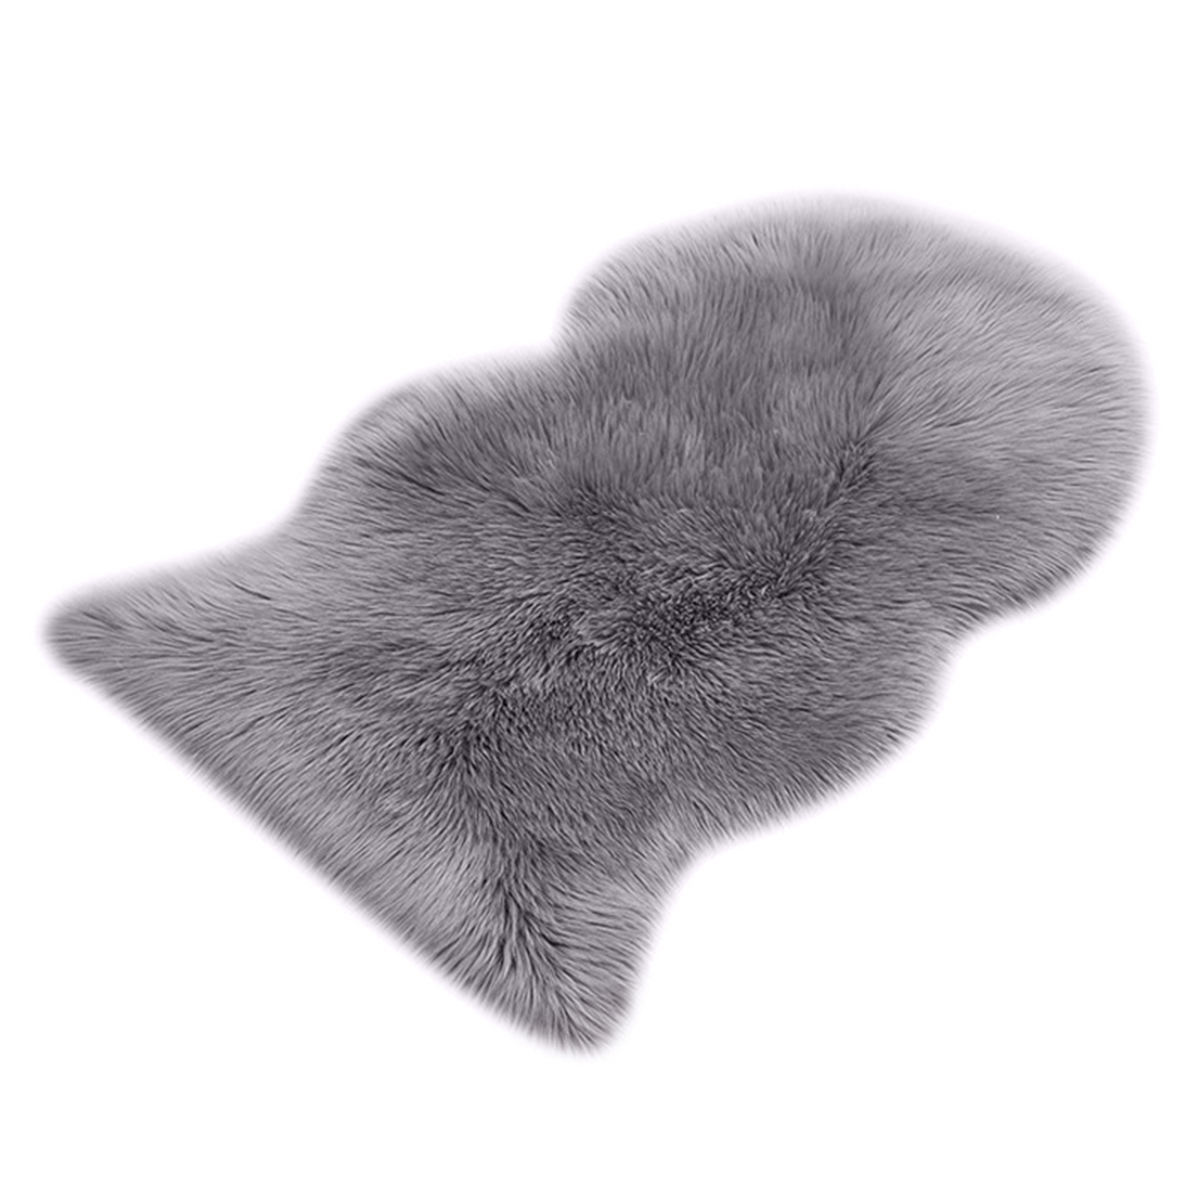 New-Faux Fur Sheepskin Rug <font><b>60</b></font> x 90 cm Faux Fleece Fluffy Area Rugs Anti-Skid Carpet for Living Room Bedroom Sofa Nursery Rugs image